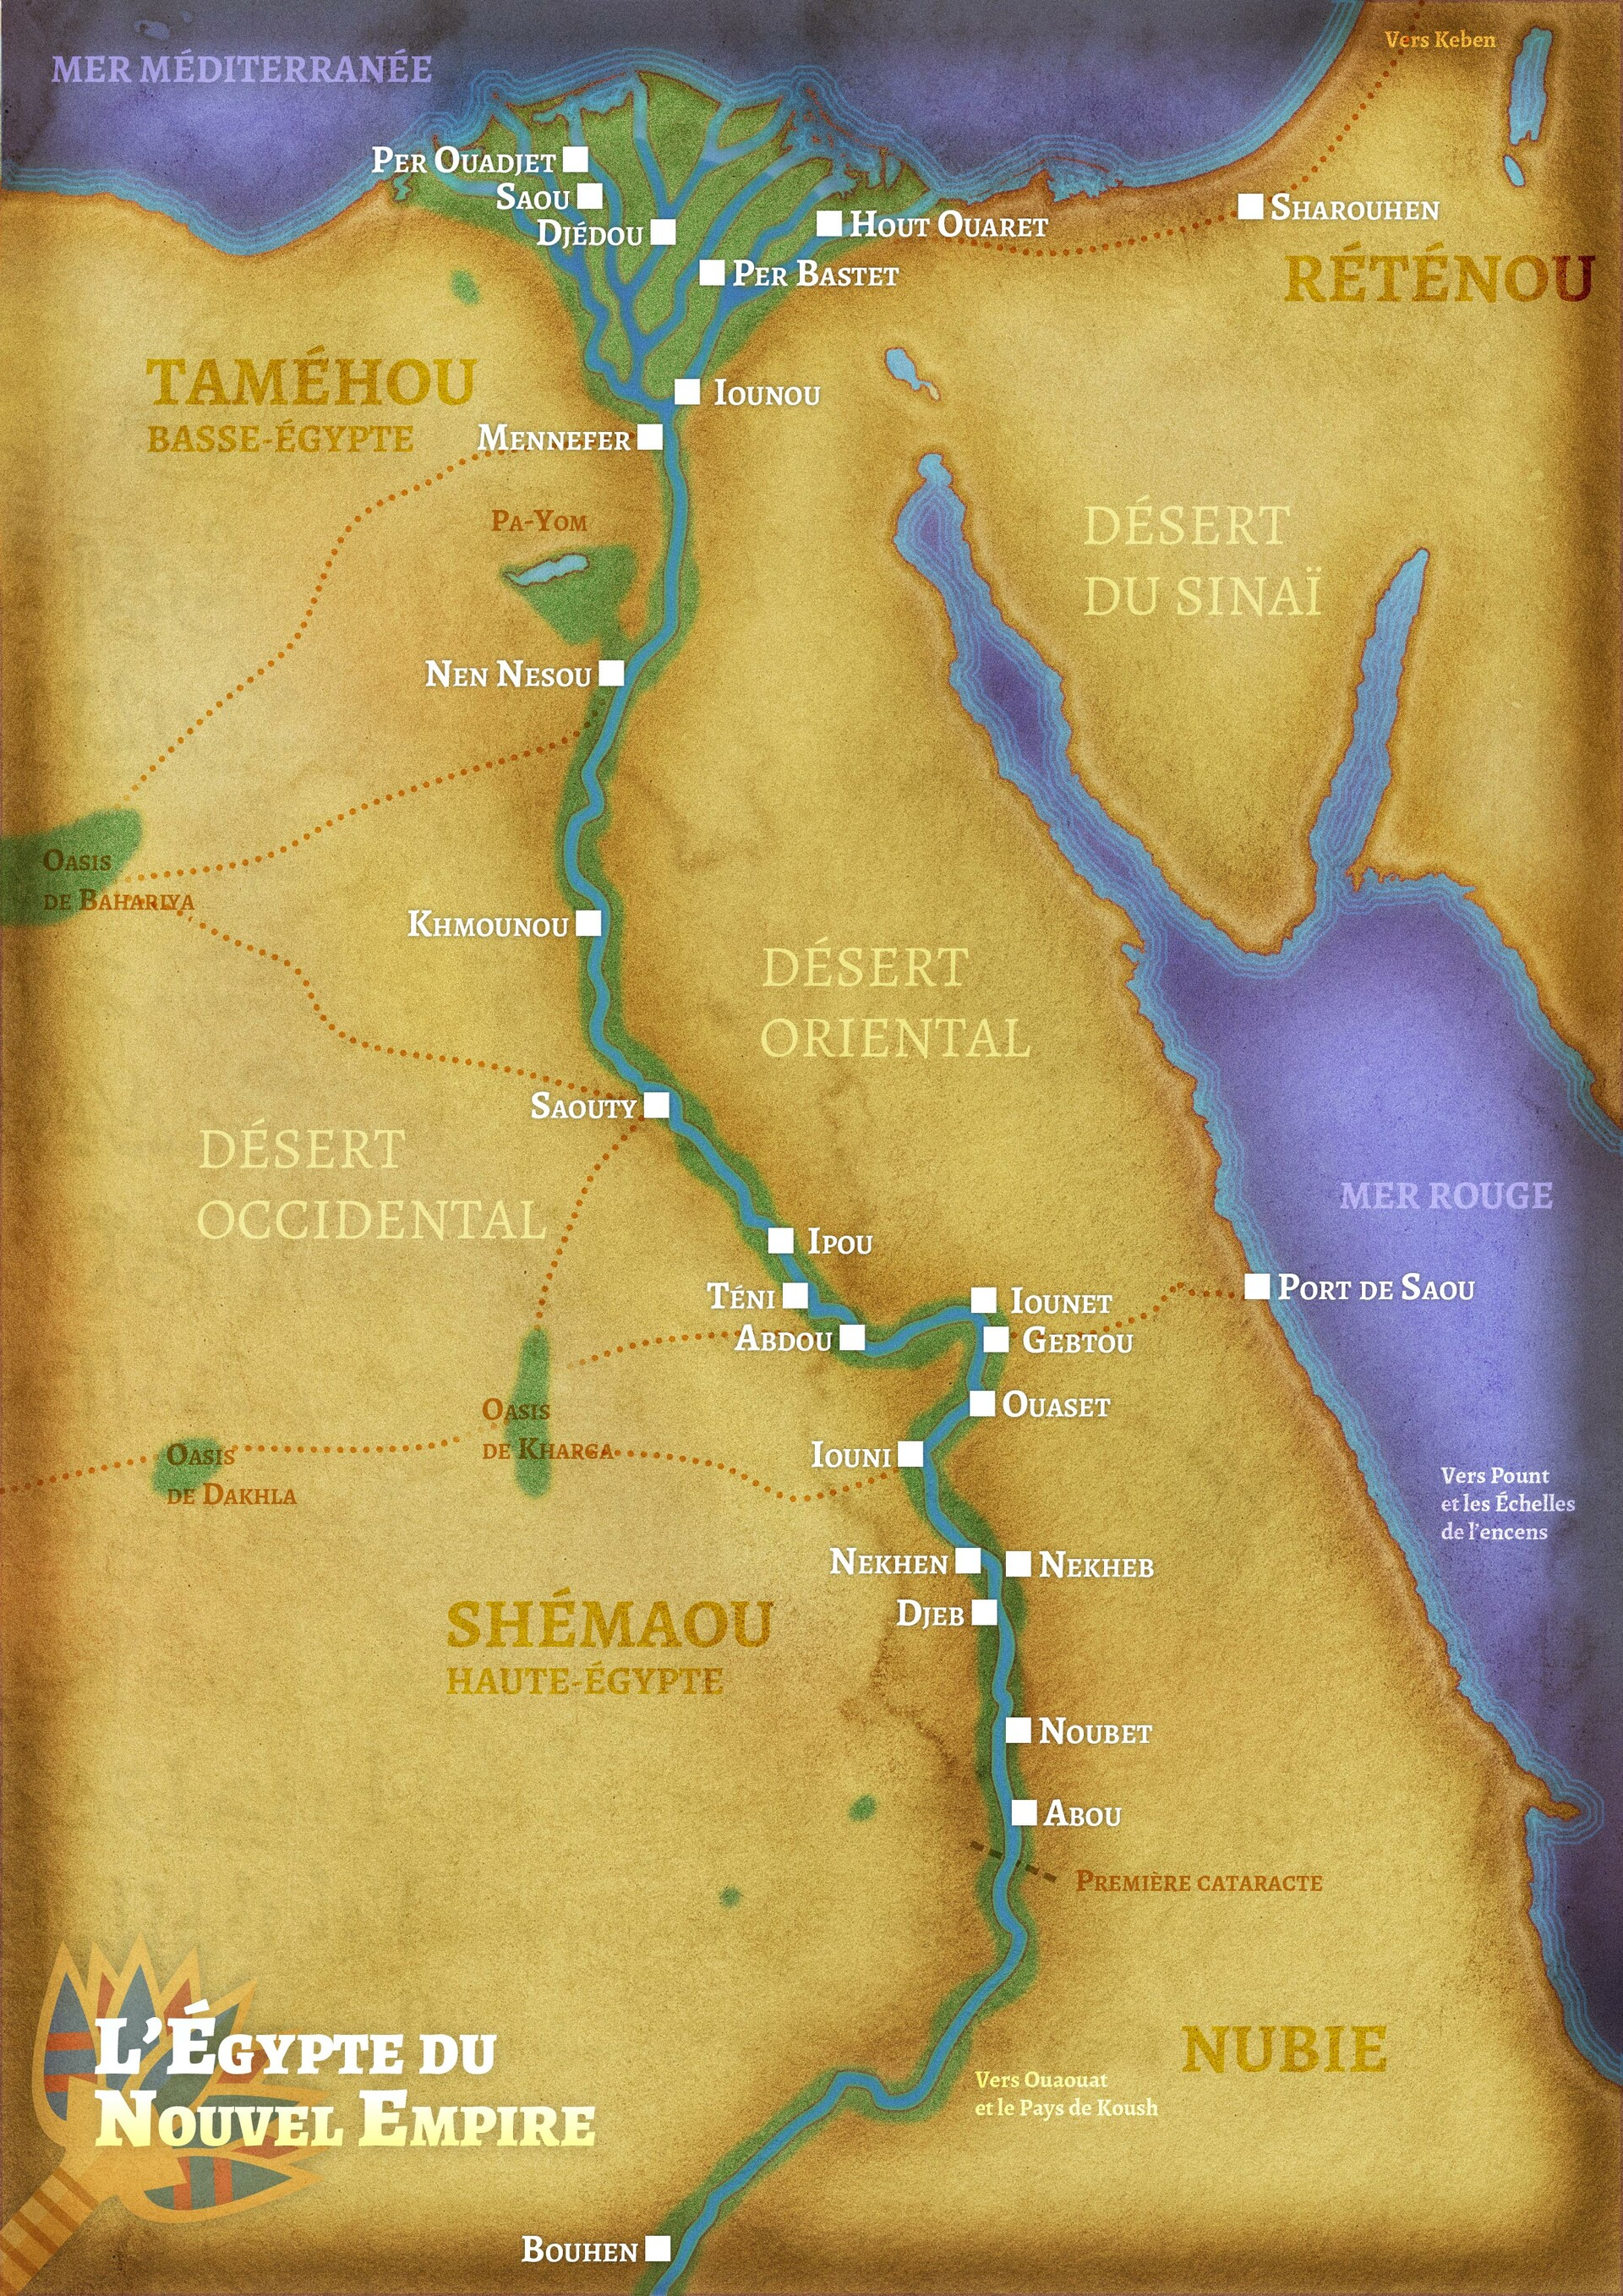 ArtStation - Ancient Egypt Map, Lazar Baruk on malawi map, mali map, france map, rwanda map, asia map, arabia map, libya map, israel map, mexico map, fertile crescent map, germany map, angola map, madagascar map, ethiopia map, sudan map, algeria map, gulf of aden map, liberia map, persia map, south america map, niger map, russia map, china map, iraq map, ghana map, africa map, roman empire map, mozambique map, south africa map, morocco map, kenya map, nigeria map, shang dynasty map, europe map, mauritius map, namibia map, india map, senegal map, italy map, tunisia map,